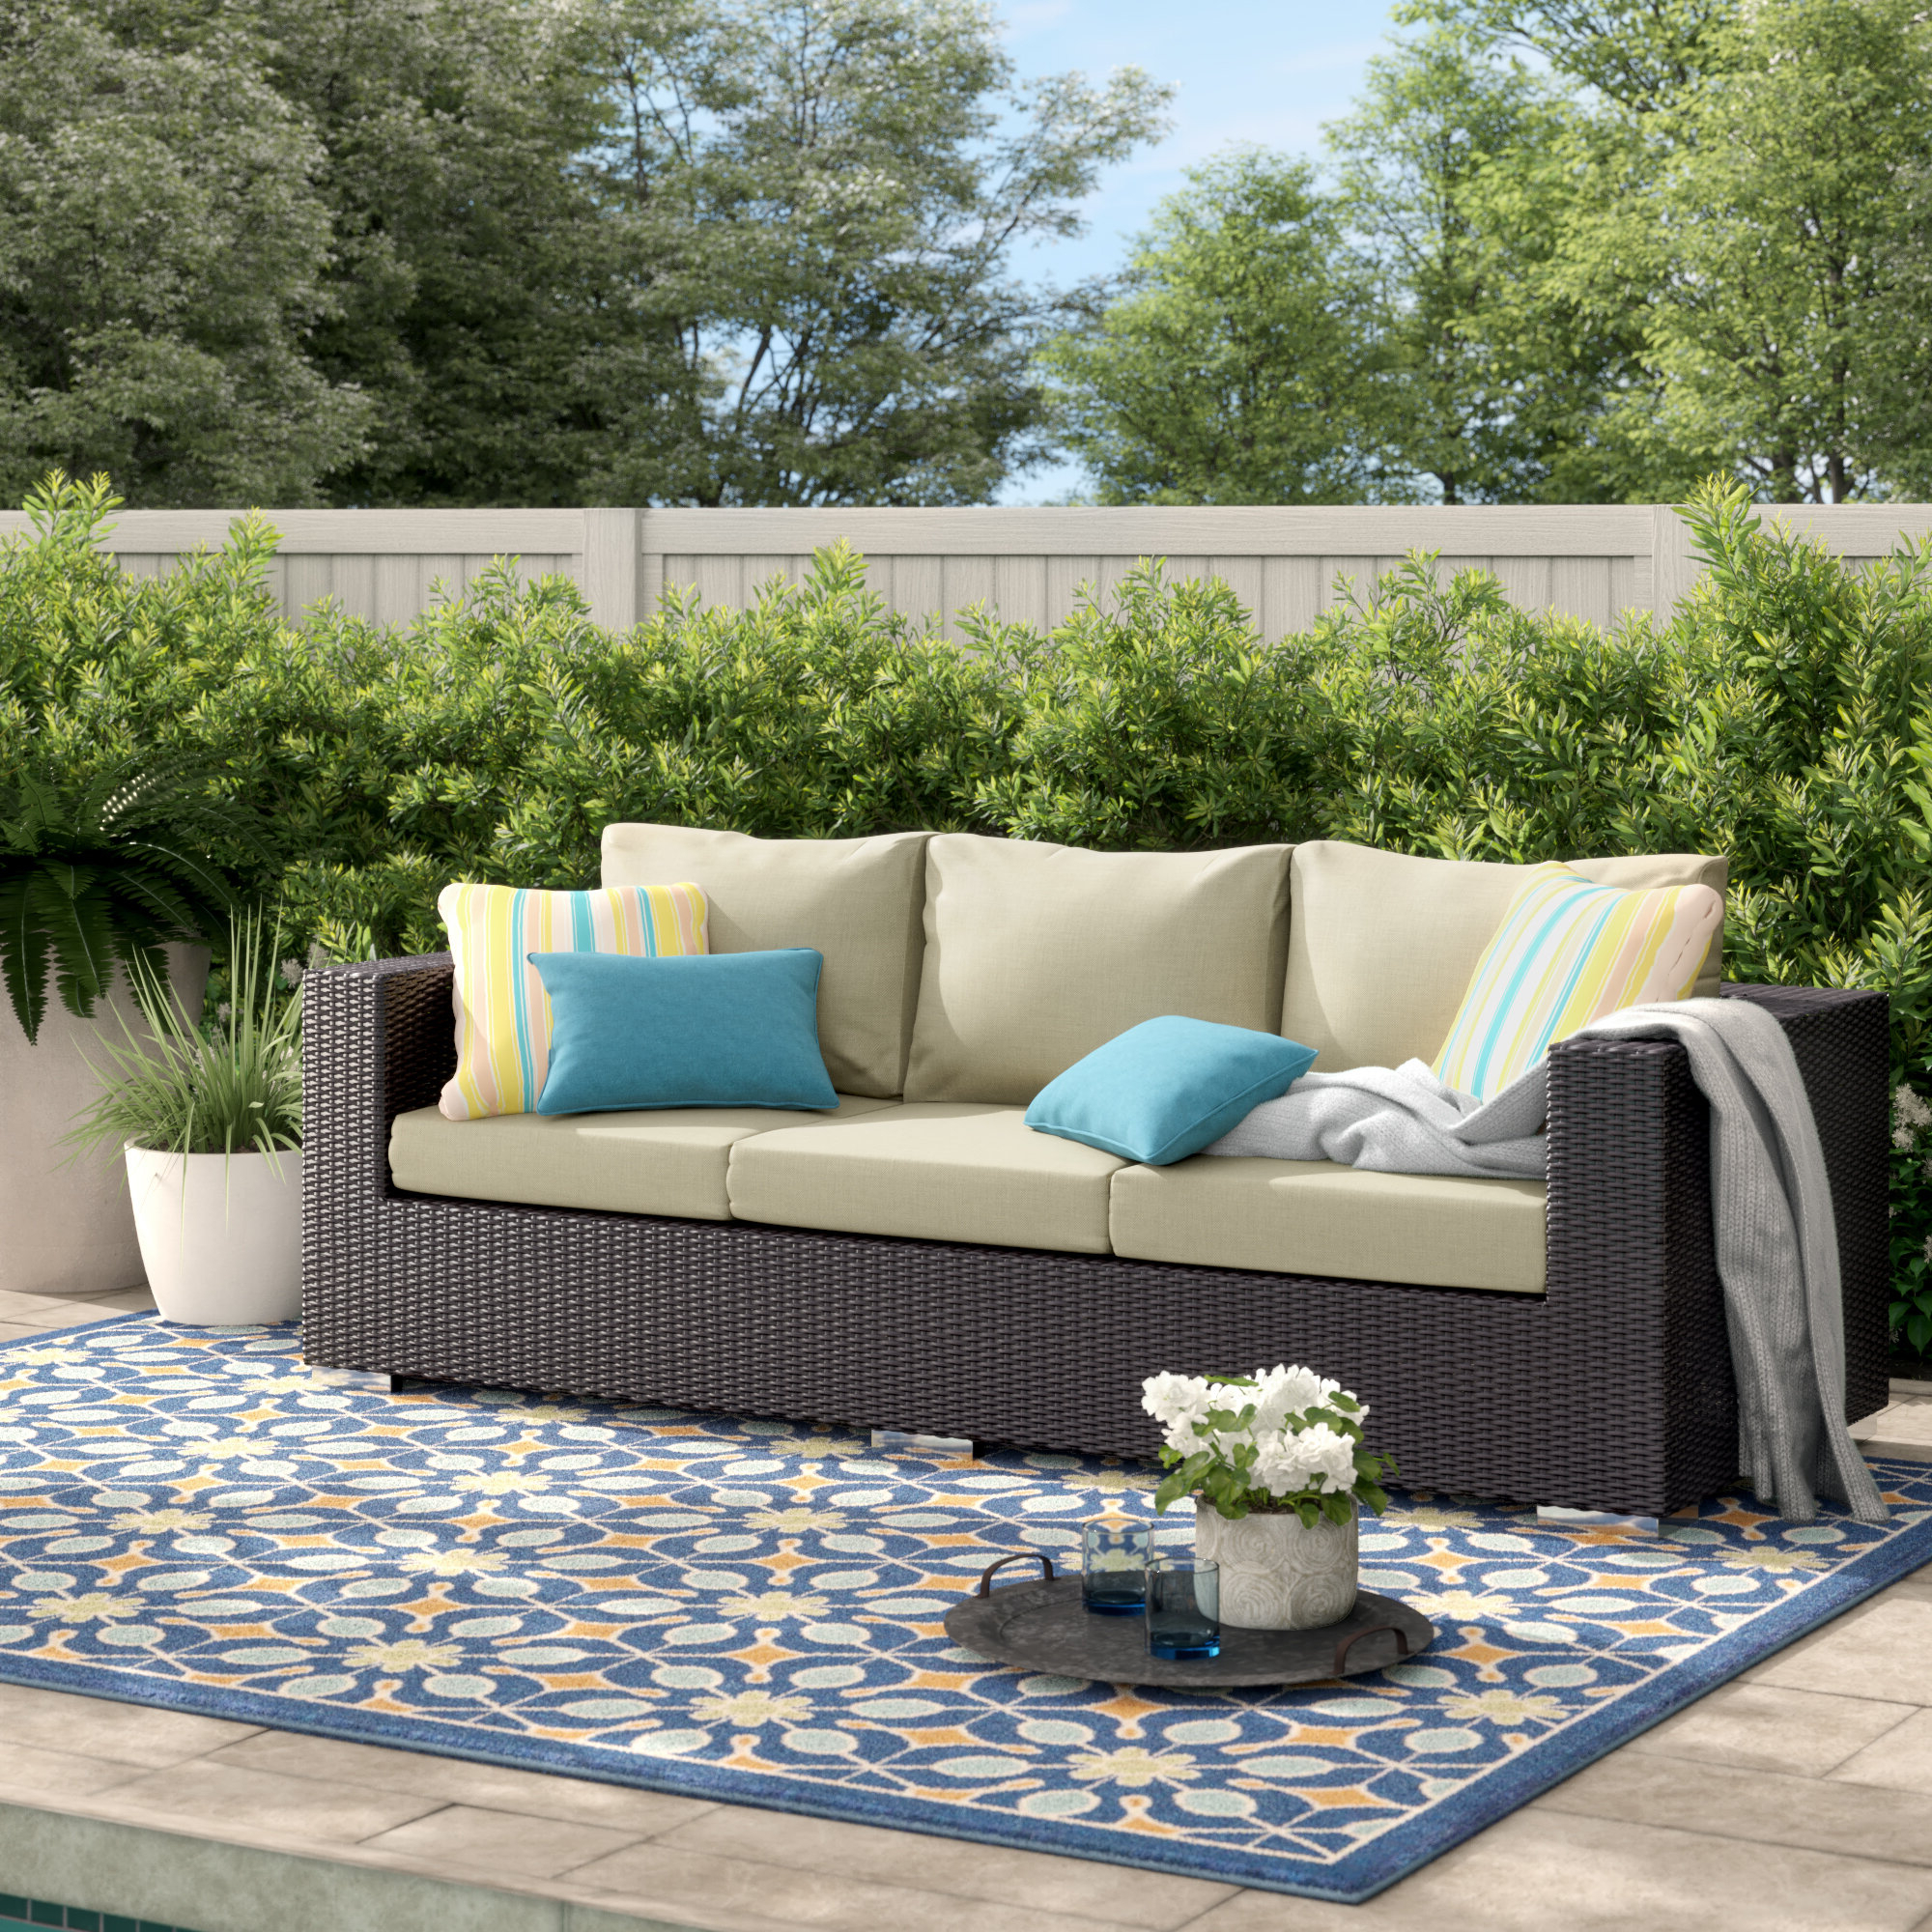 Best And Newest Brentwood Patio Sofa With Cushions For Patio Sofas With Cushions (View 8 of 20)